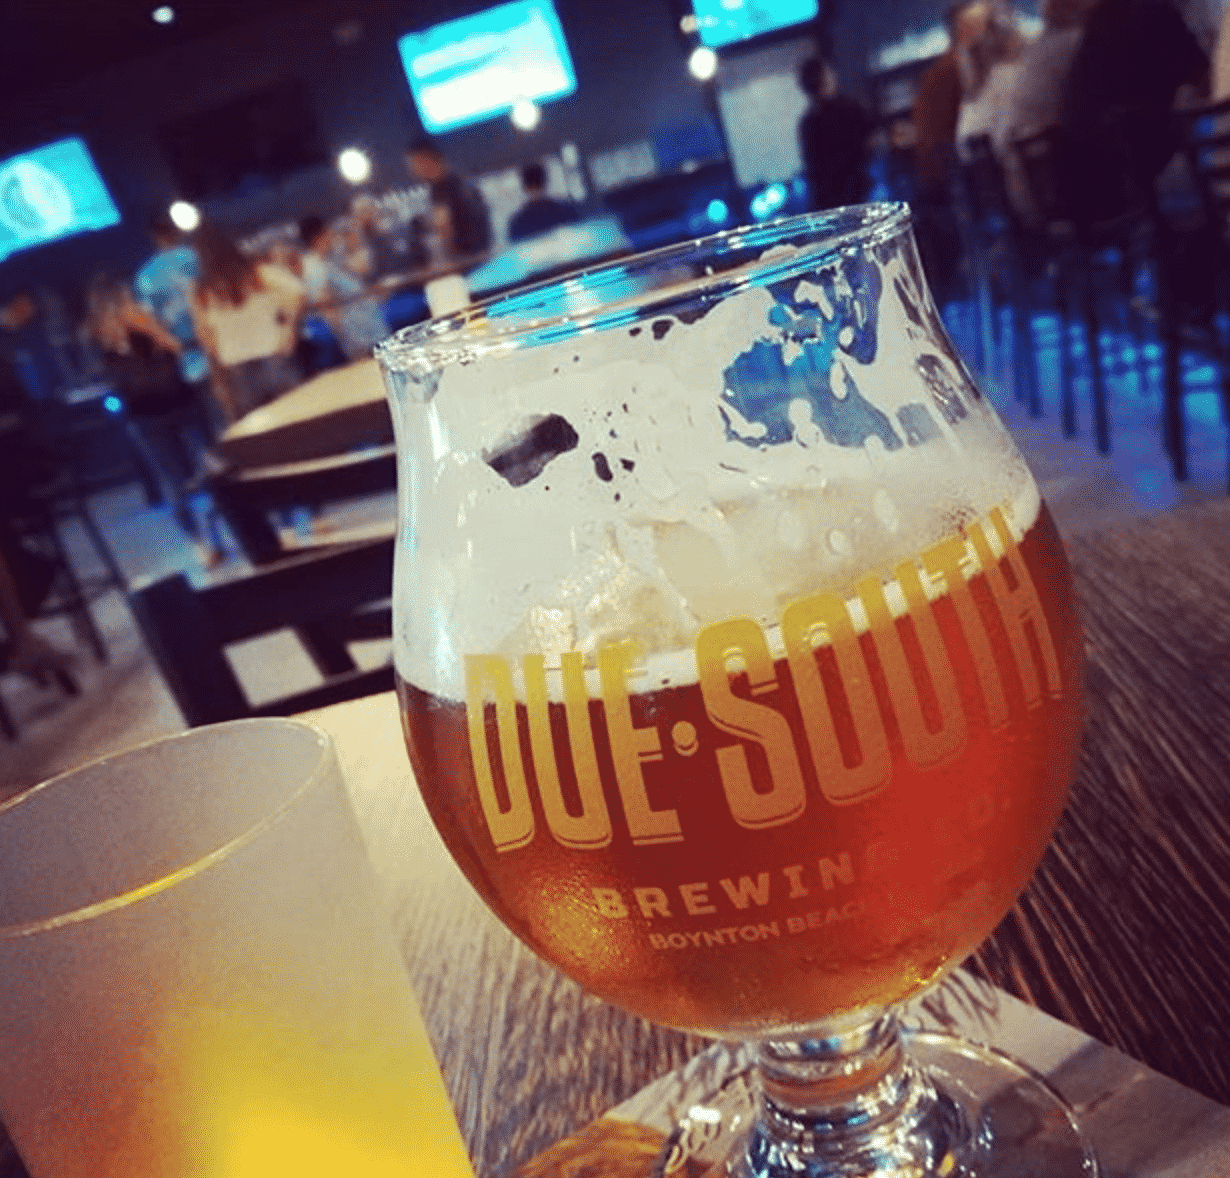 Due South Brewing Co in America